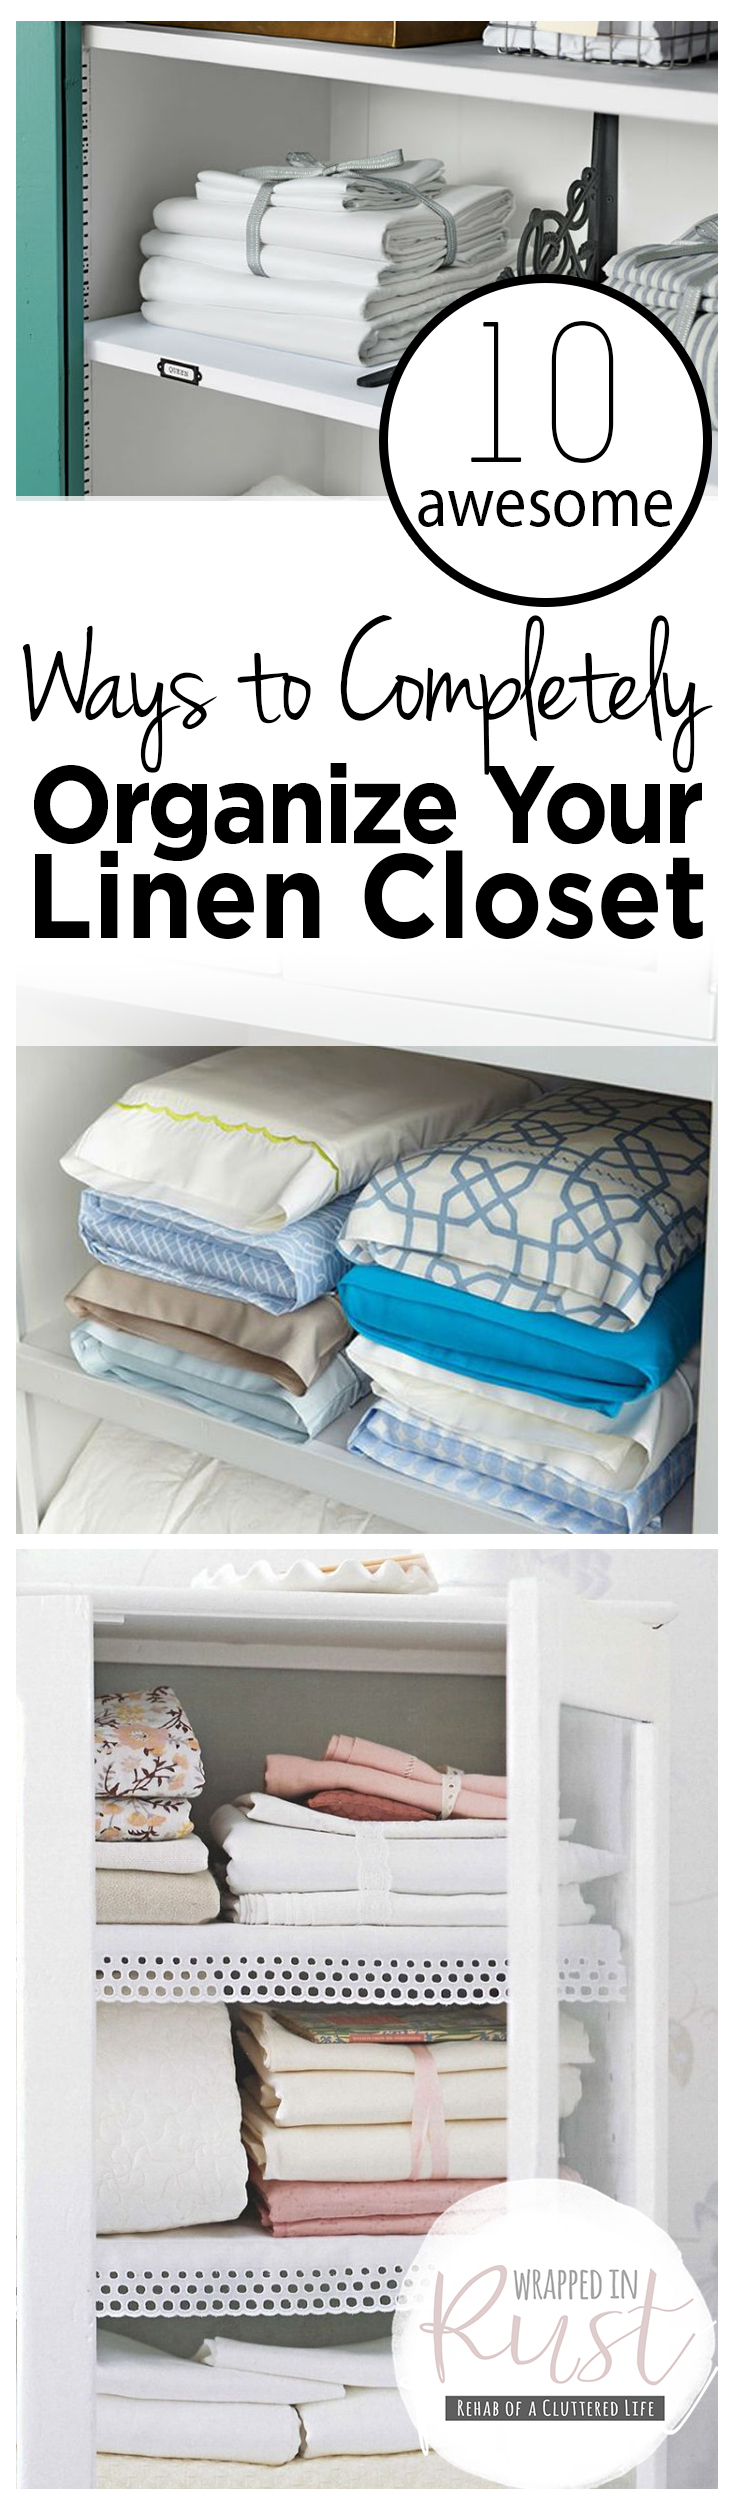 10 Awesome Ways To Completely Organize Your Linen Closet| Organize Your  Linen Closet, How